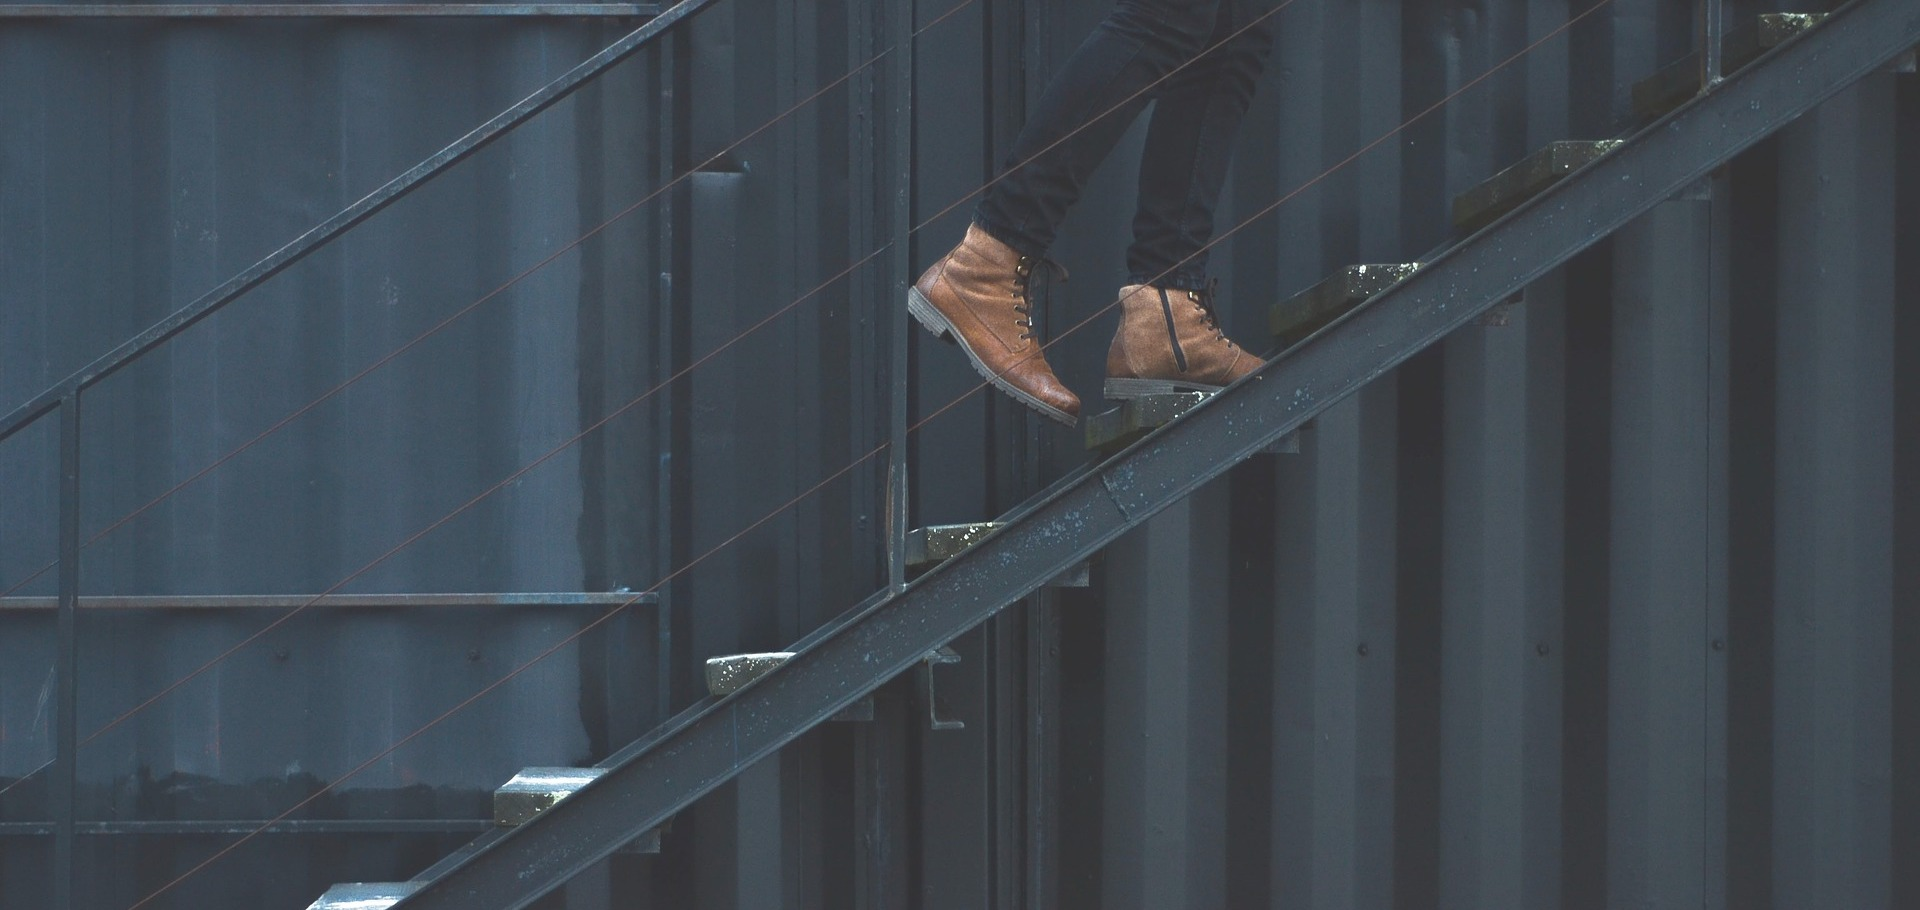 A staircase seen from the side, showing the boots of someone walking up.